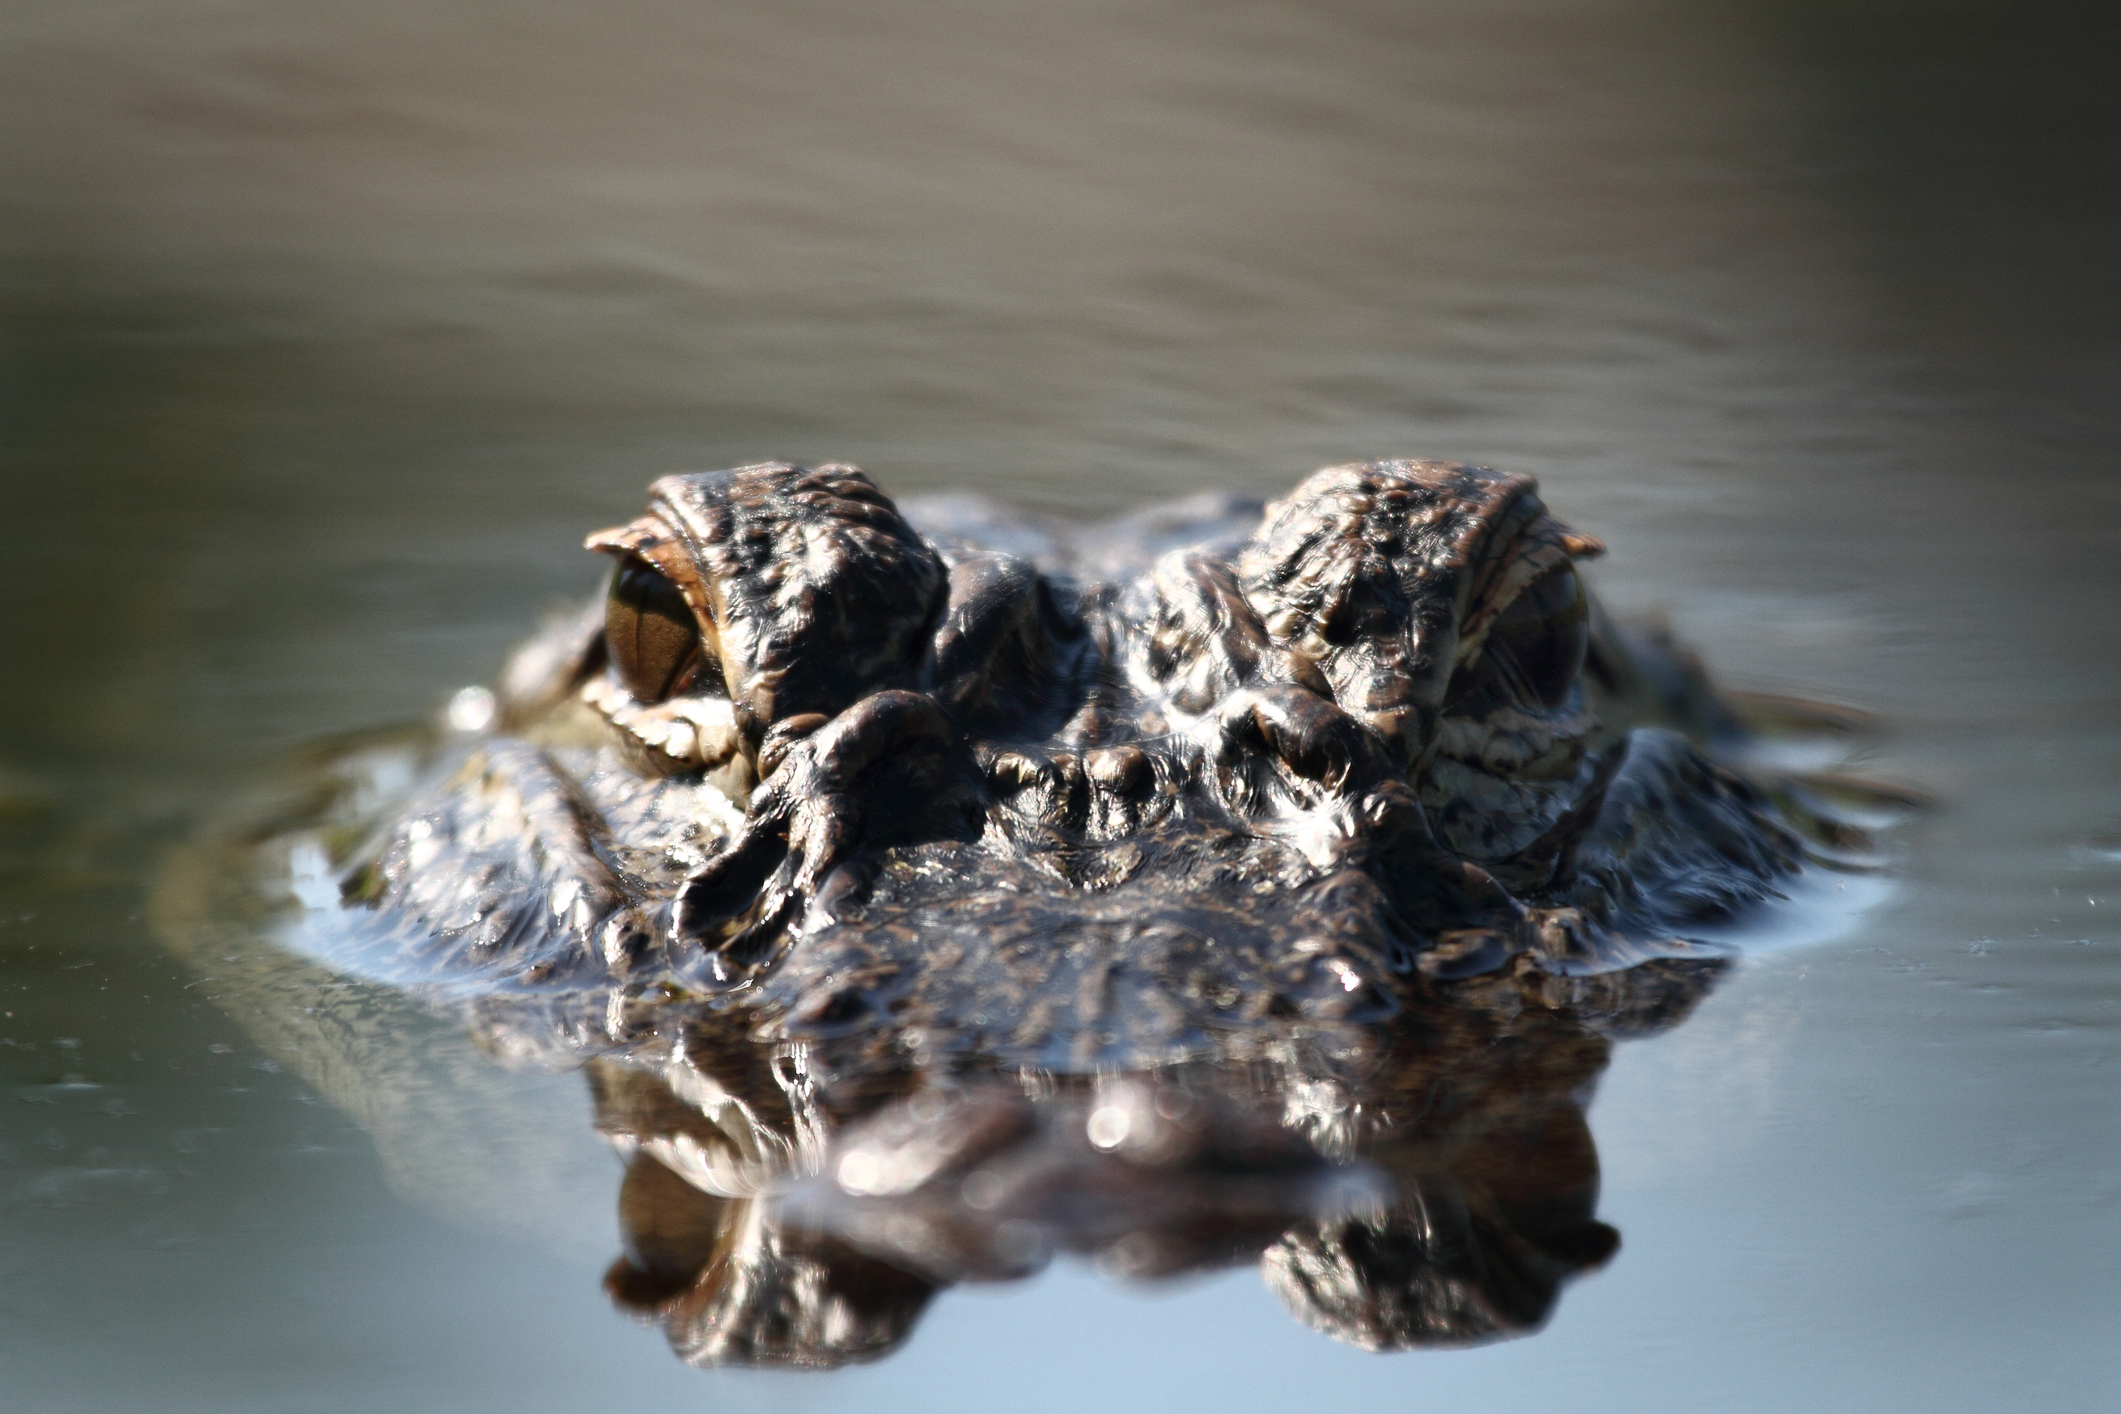 Alligator stock image (Getty Images)